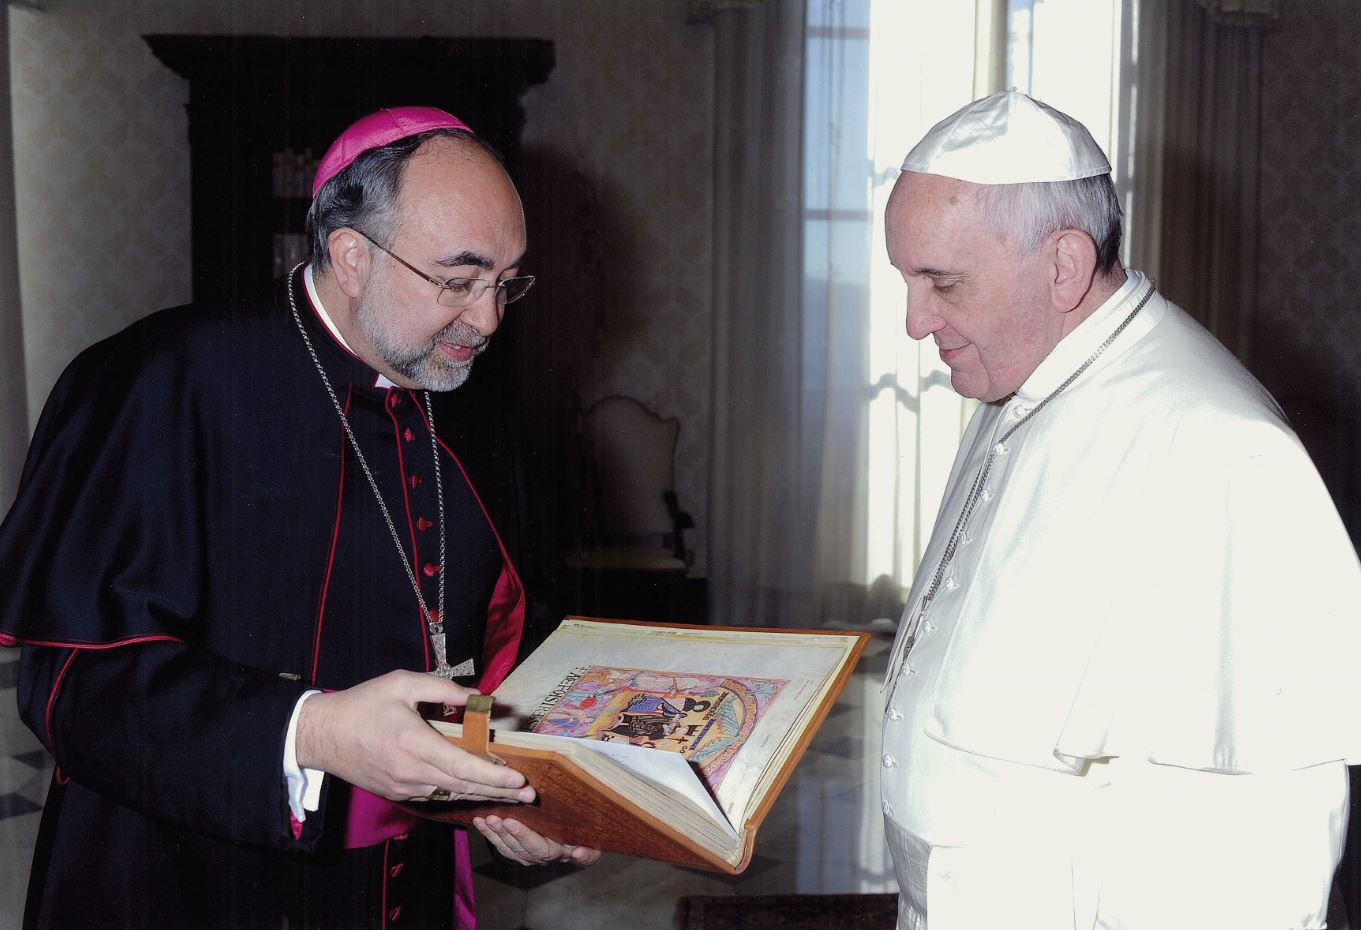 Pope Francis I with his Book of Testaments